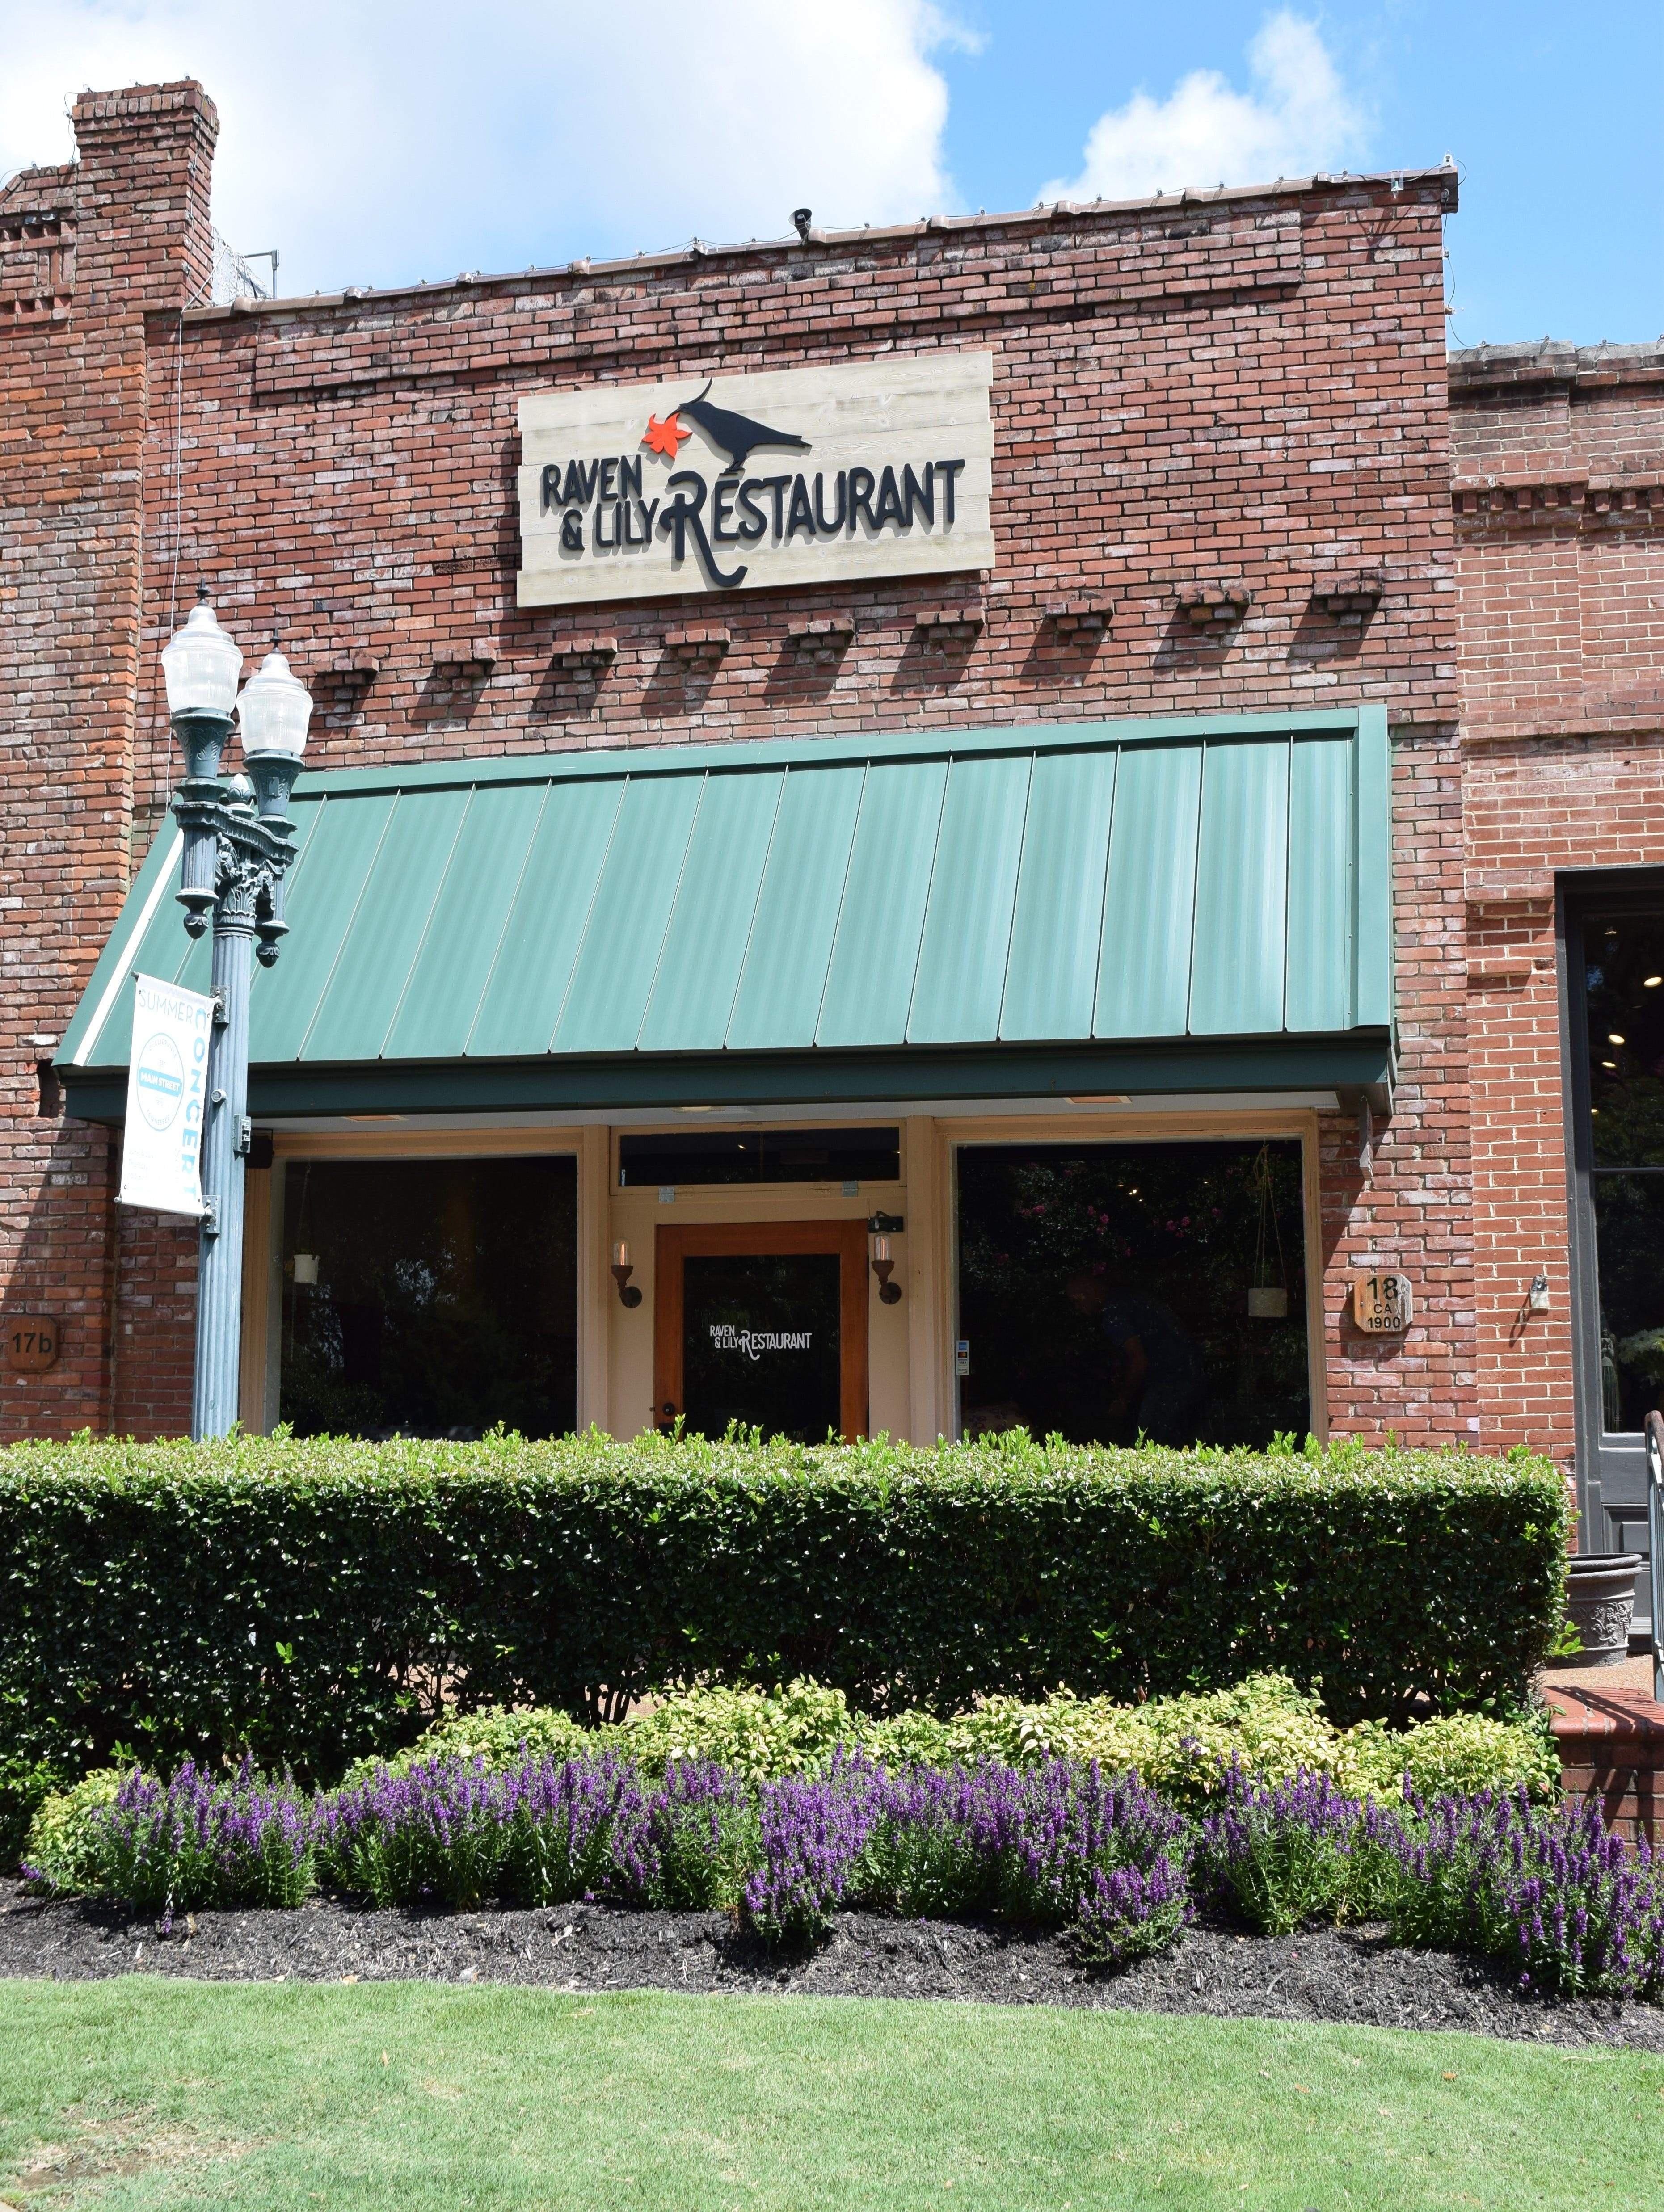 Raven & Lily restaurant opens in Collierville Historic Town Square | The Commercial Appeal